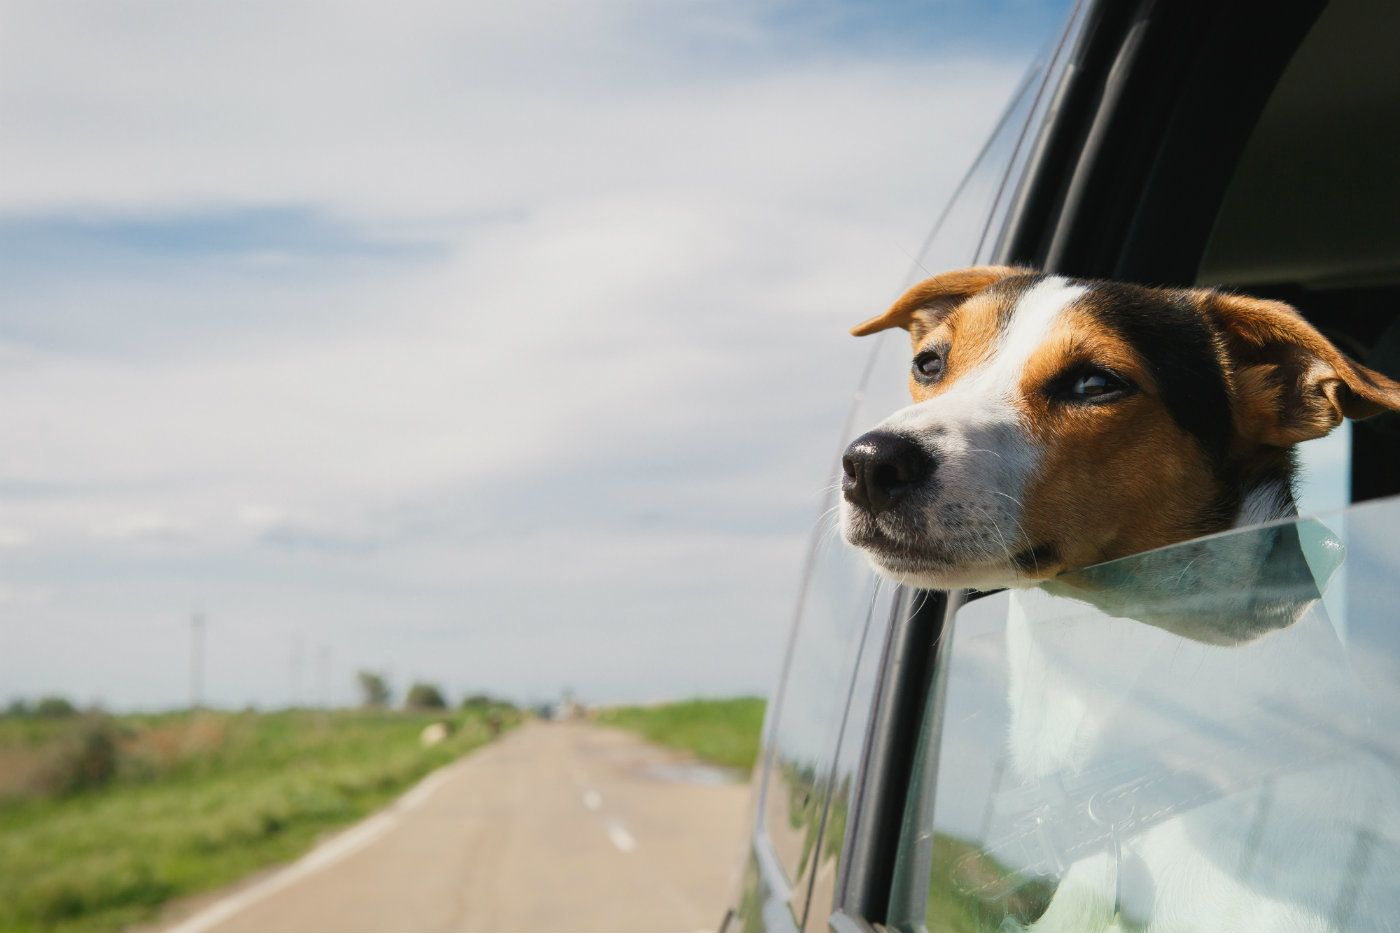 Canine Car Seats & Rolling Refrigerators: Auto Trends Around the World